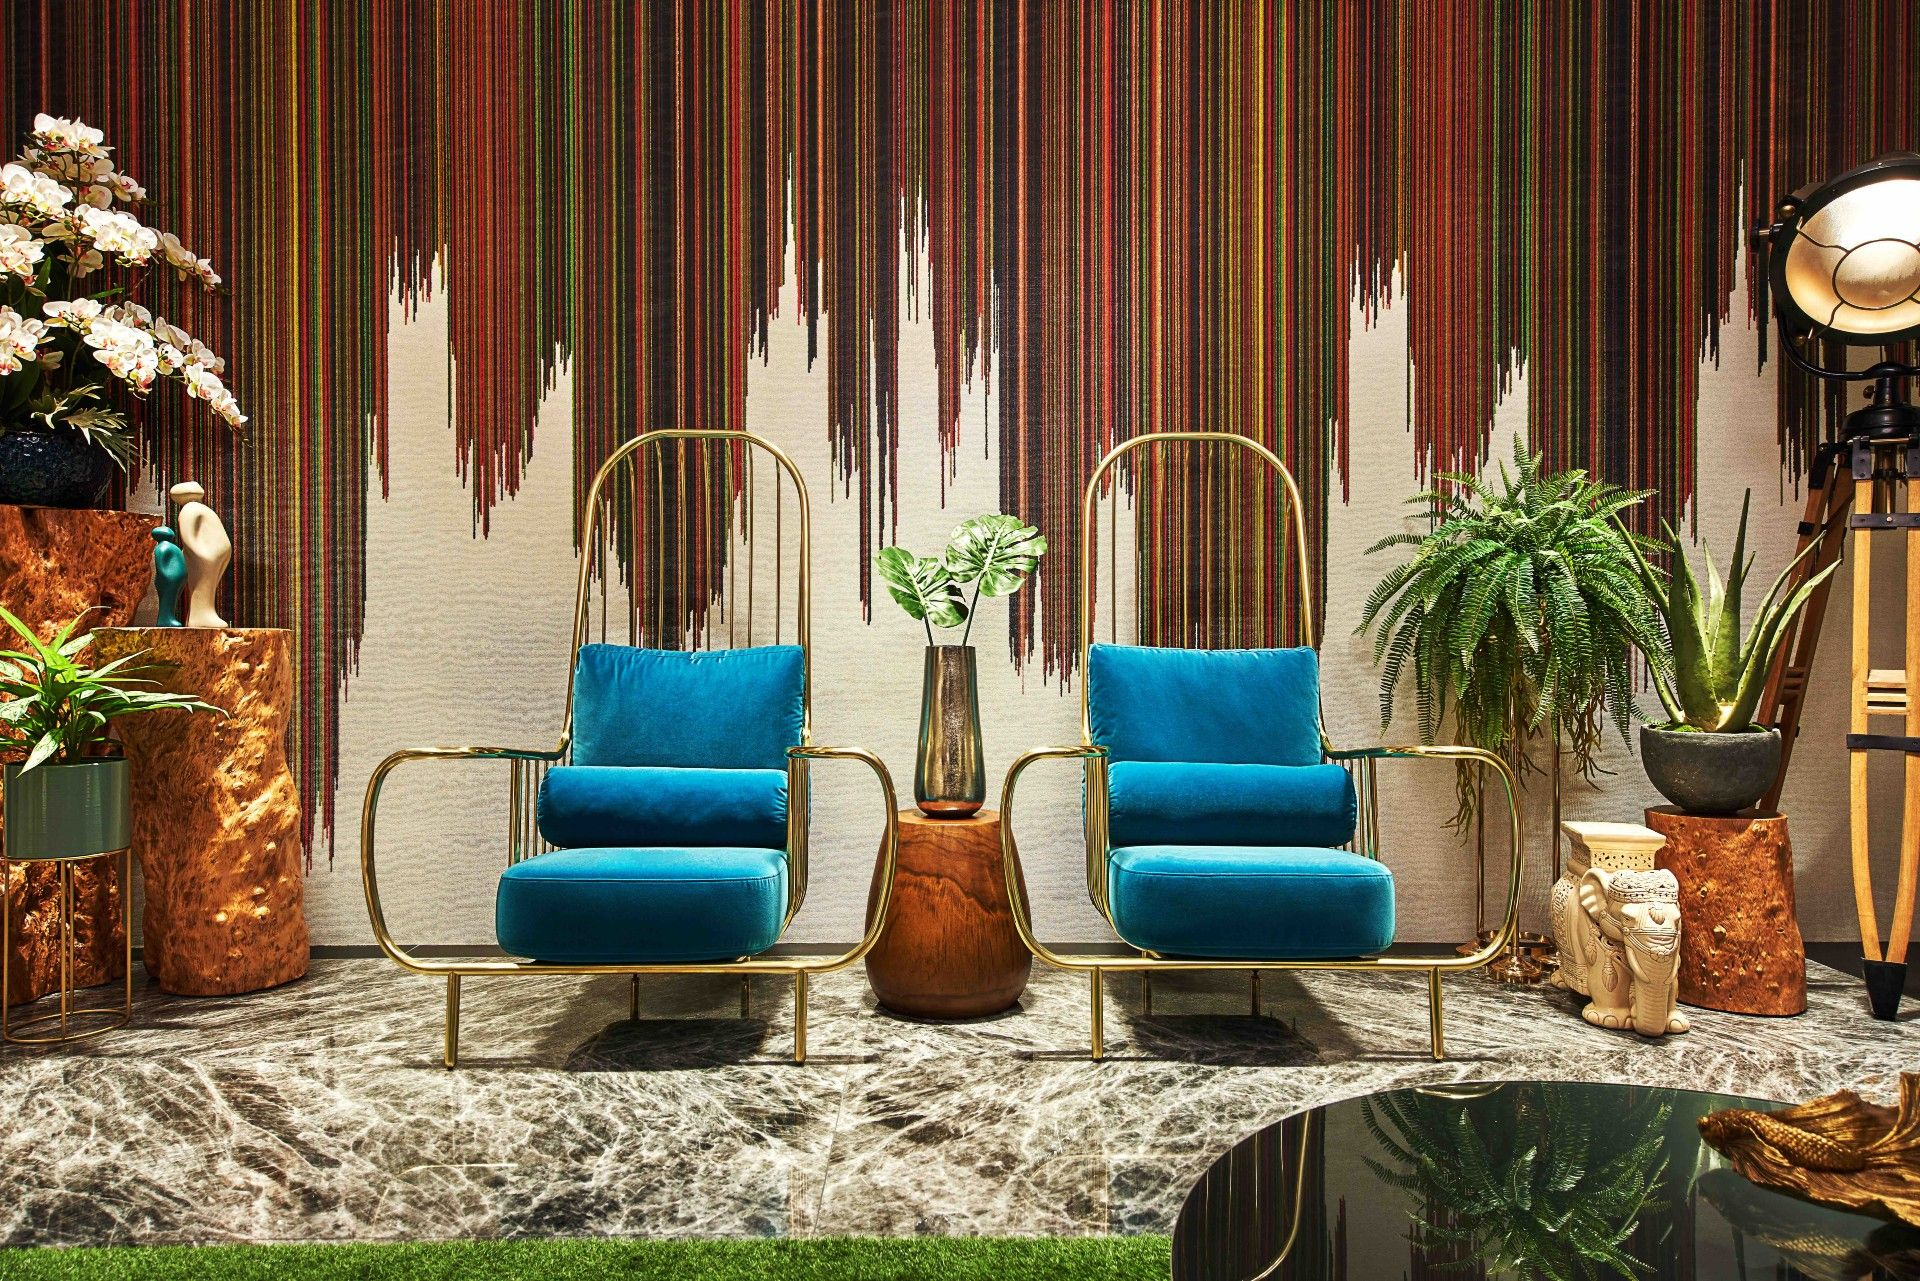 4 Inspiring Decor Ideas From The Shophouse Office of Prestige Global Designs